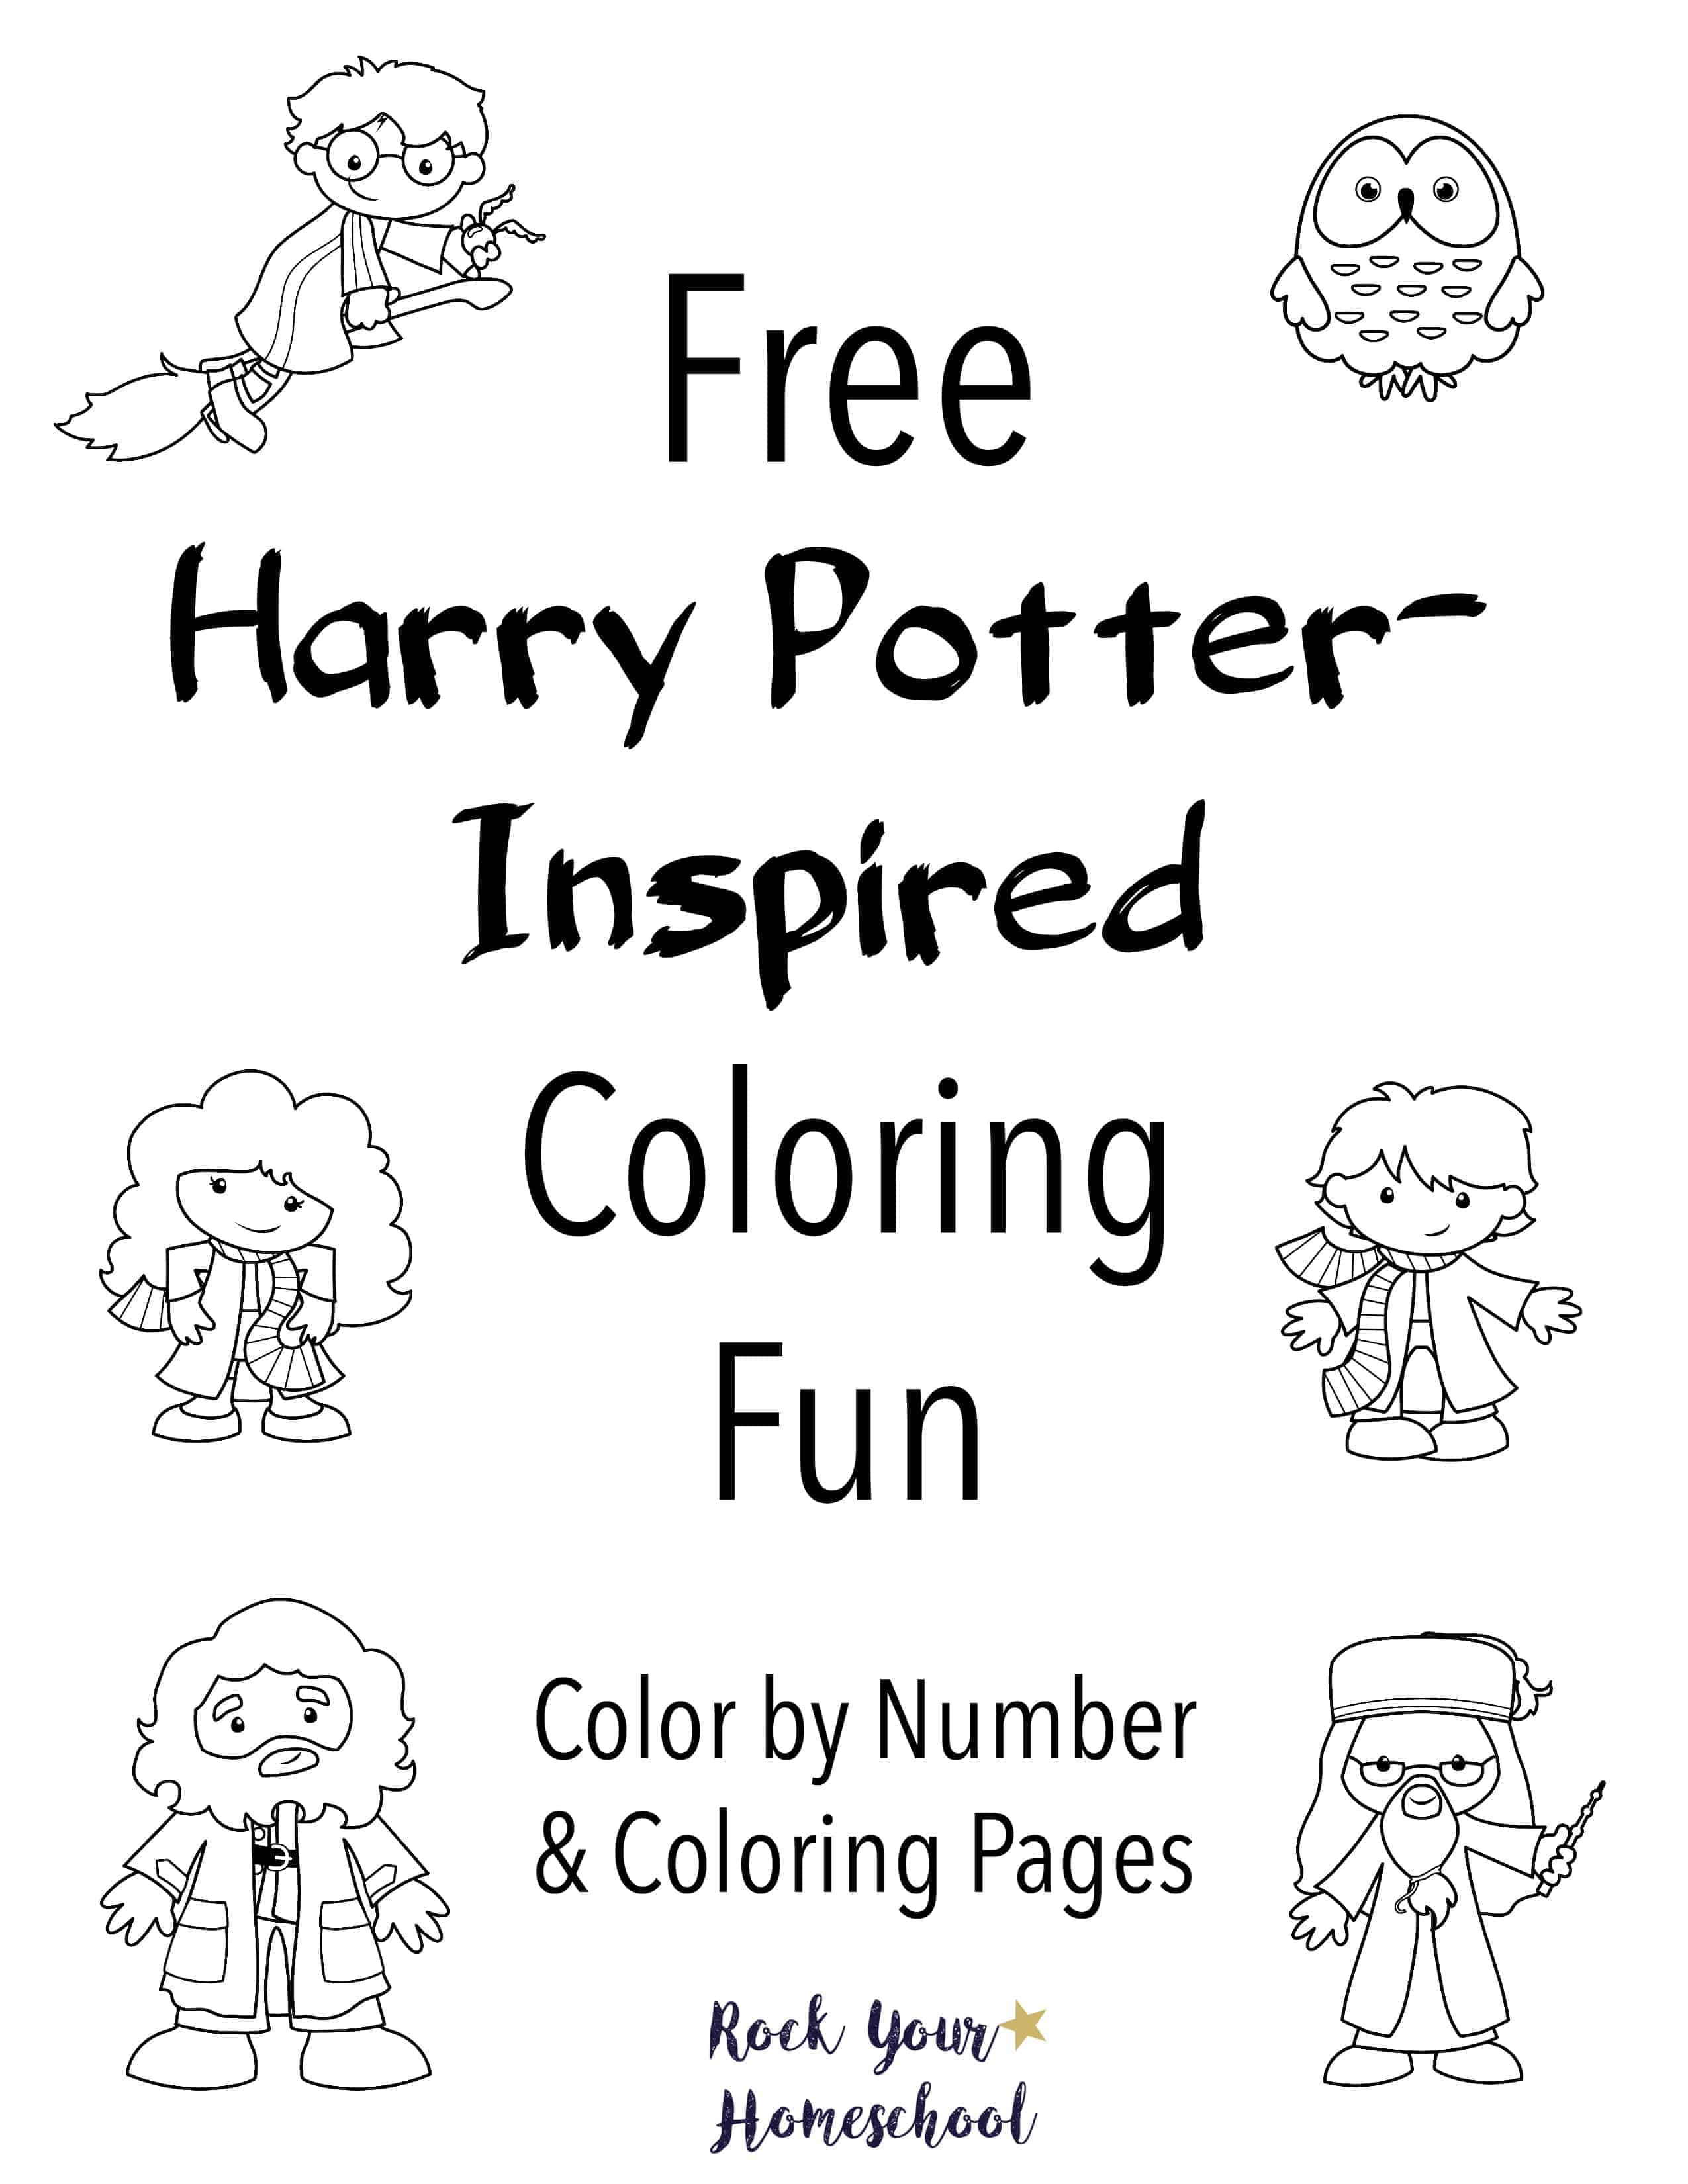 Free Harry Potter Inspired Coloring Fun